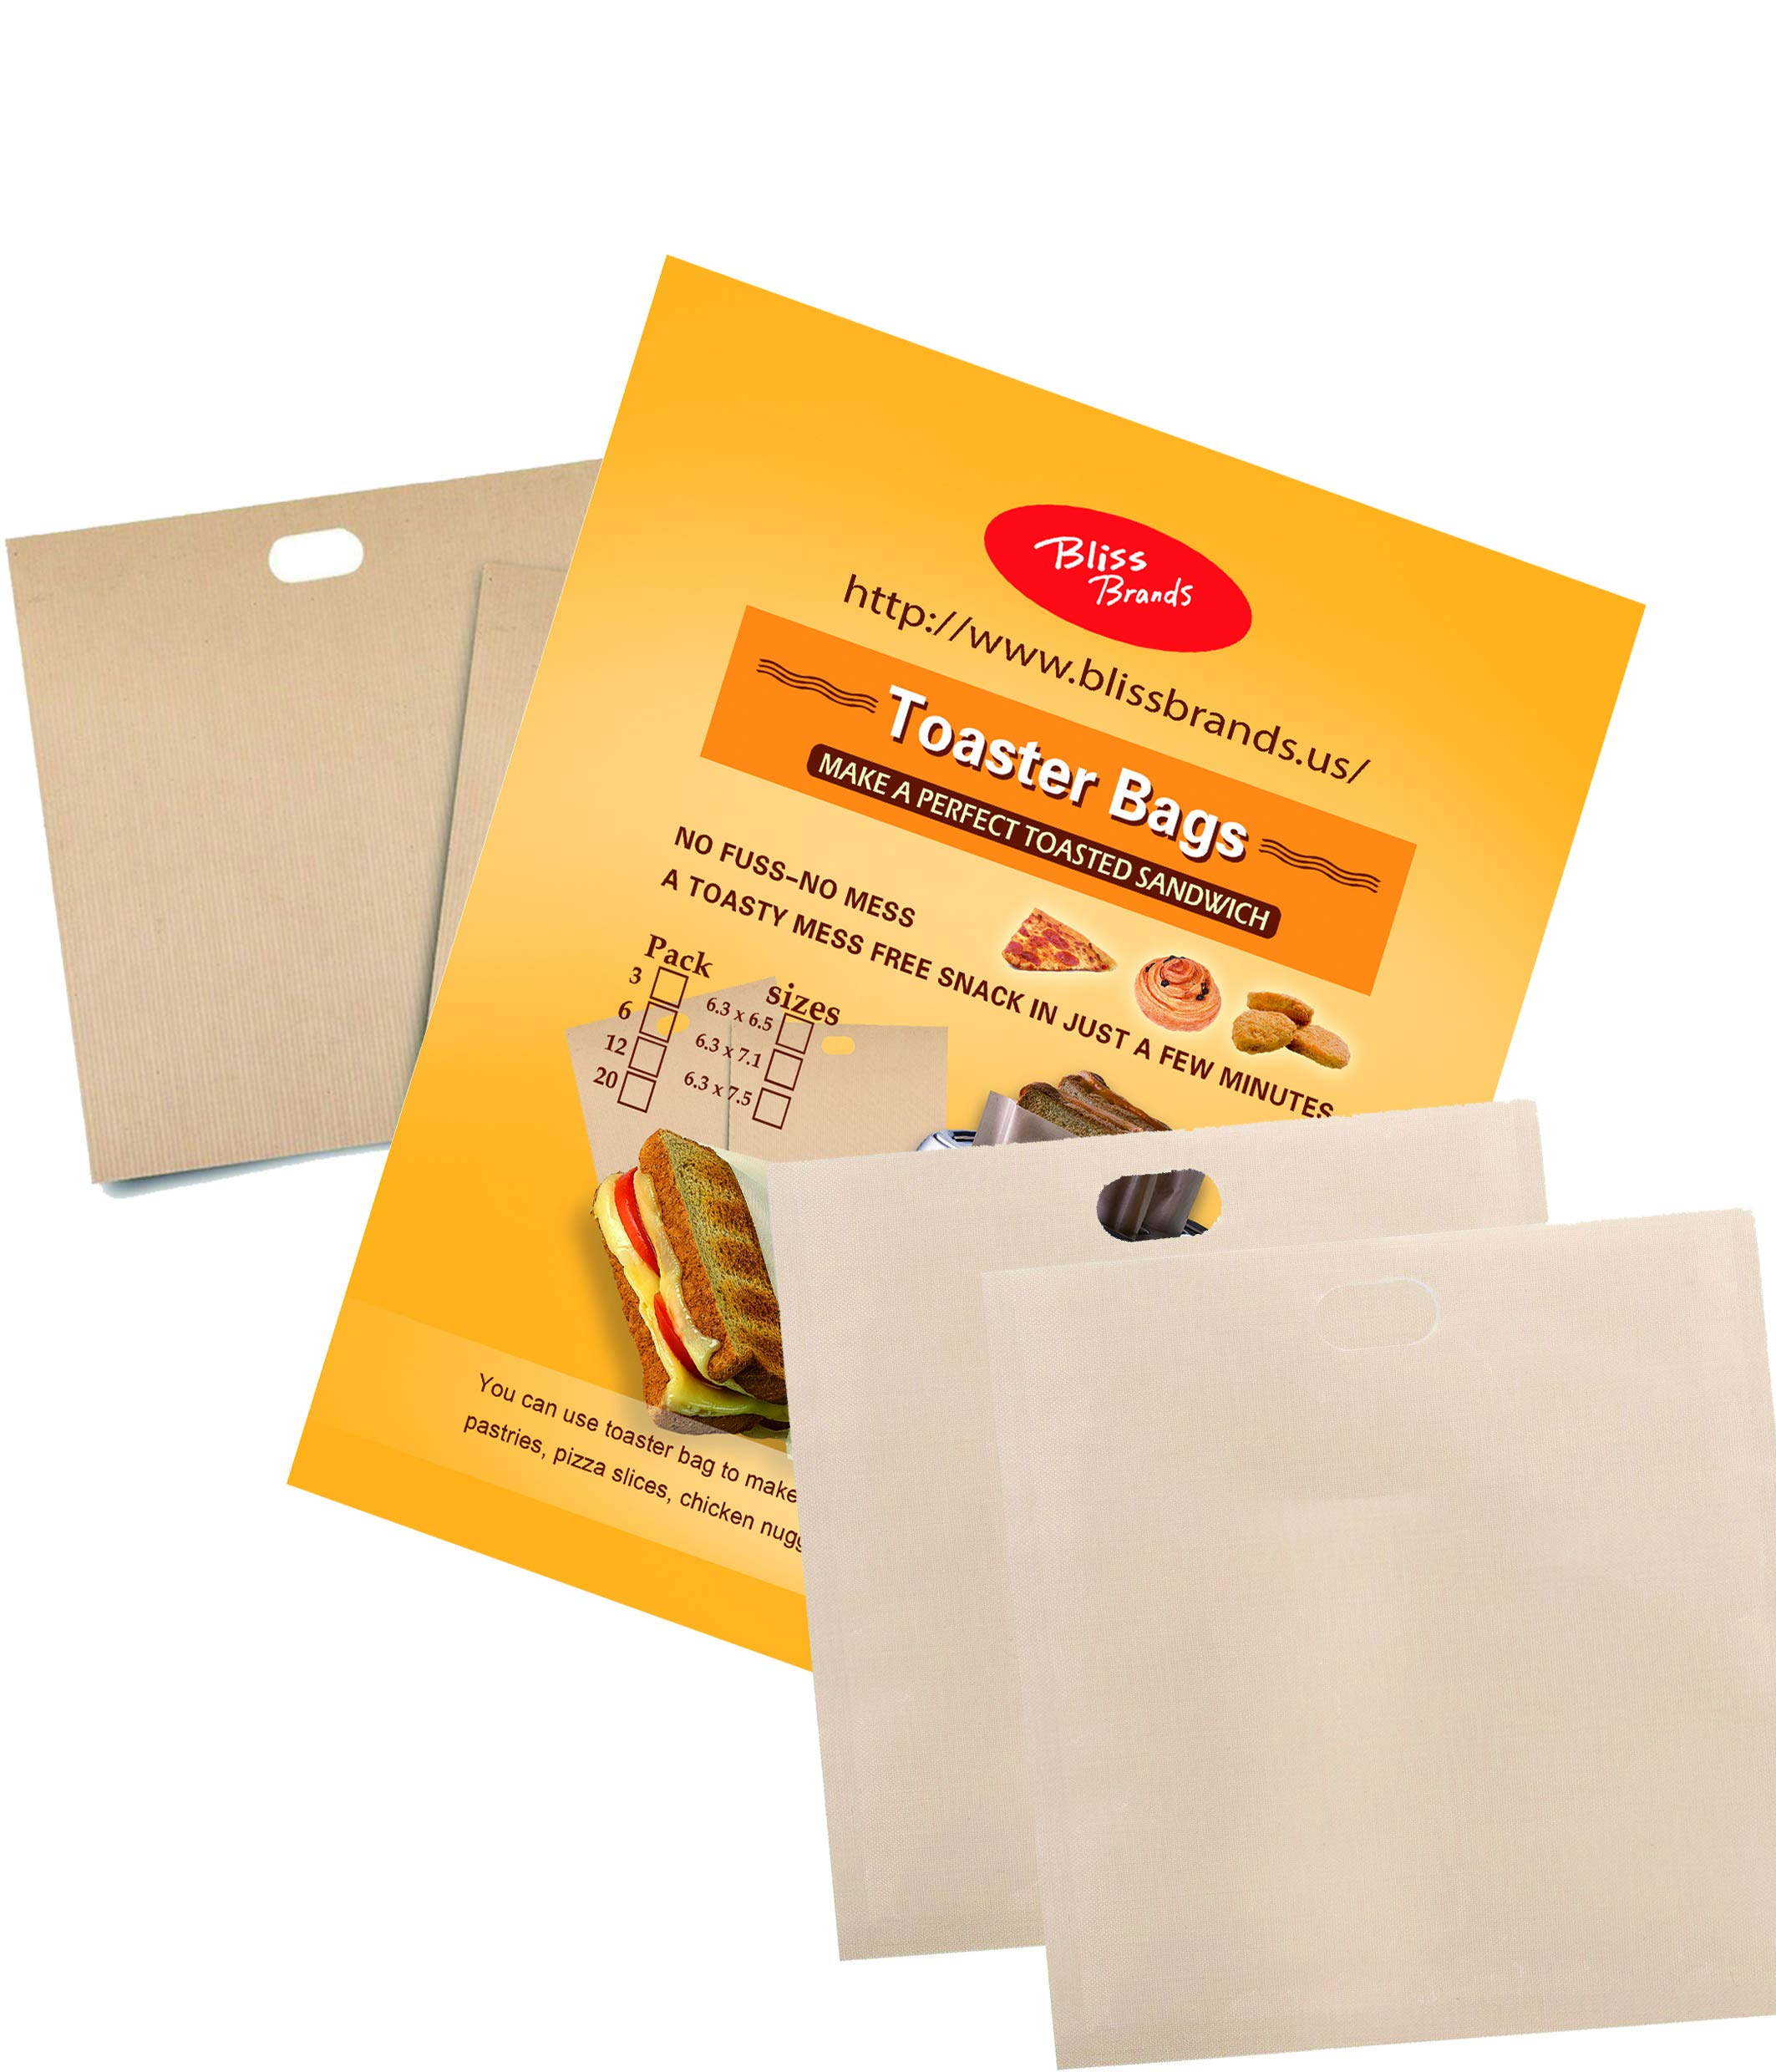 Reusable Toaster Bags: Non-Stick Sandwich Pouch 20 Pack - FDA Approved, BPA & Gluten Free Sleeve - Great for Grilled Cheese, Chicken Nuggets, Pizza Slices, Sausages, Panini, Pastries, Sandwiches by Bliss Brands